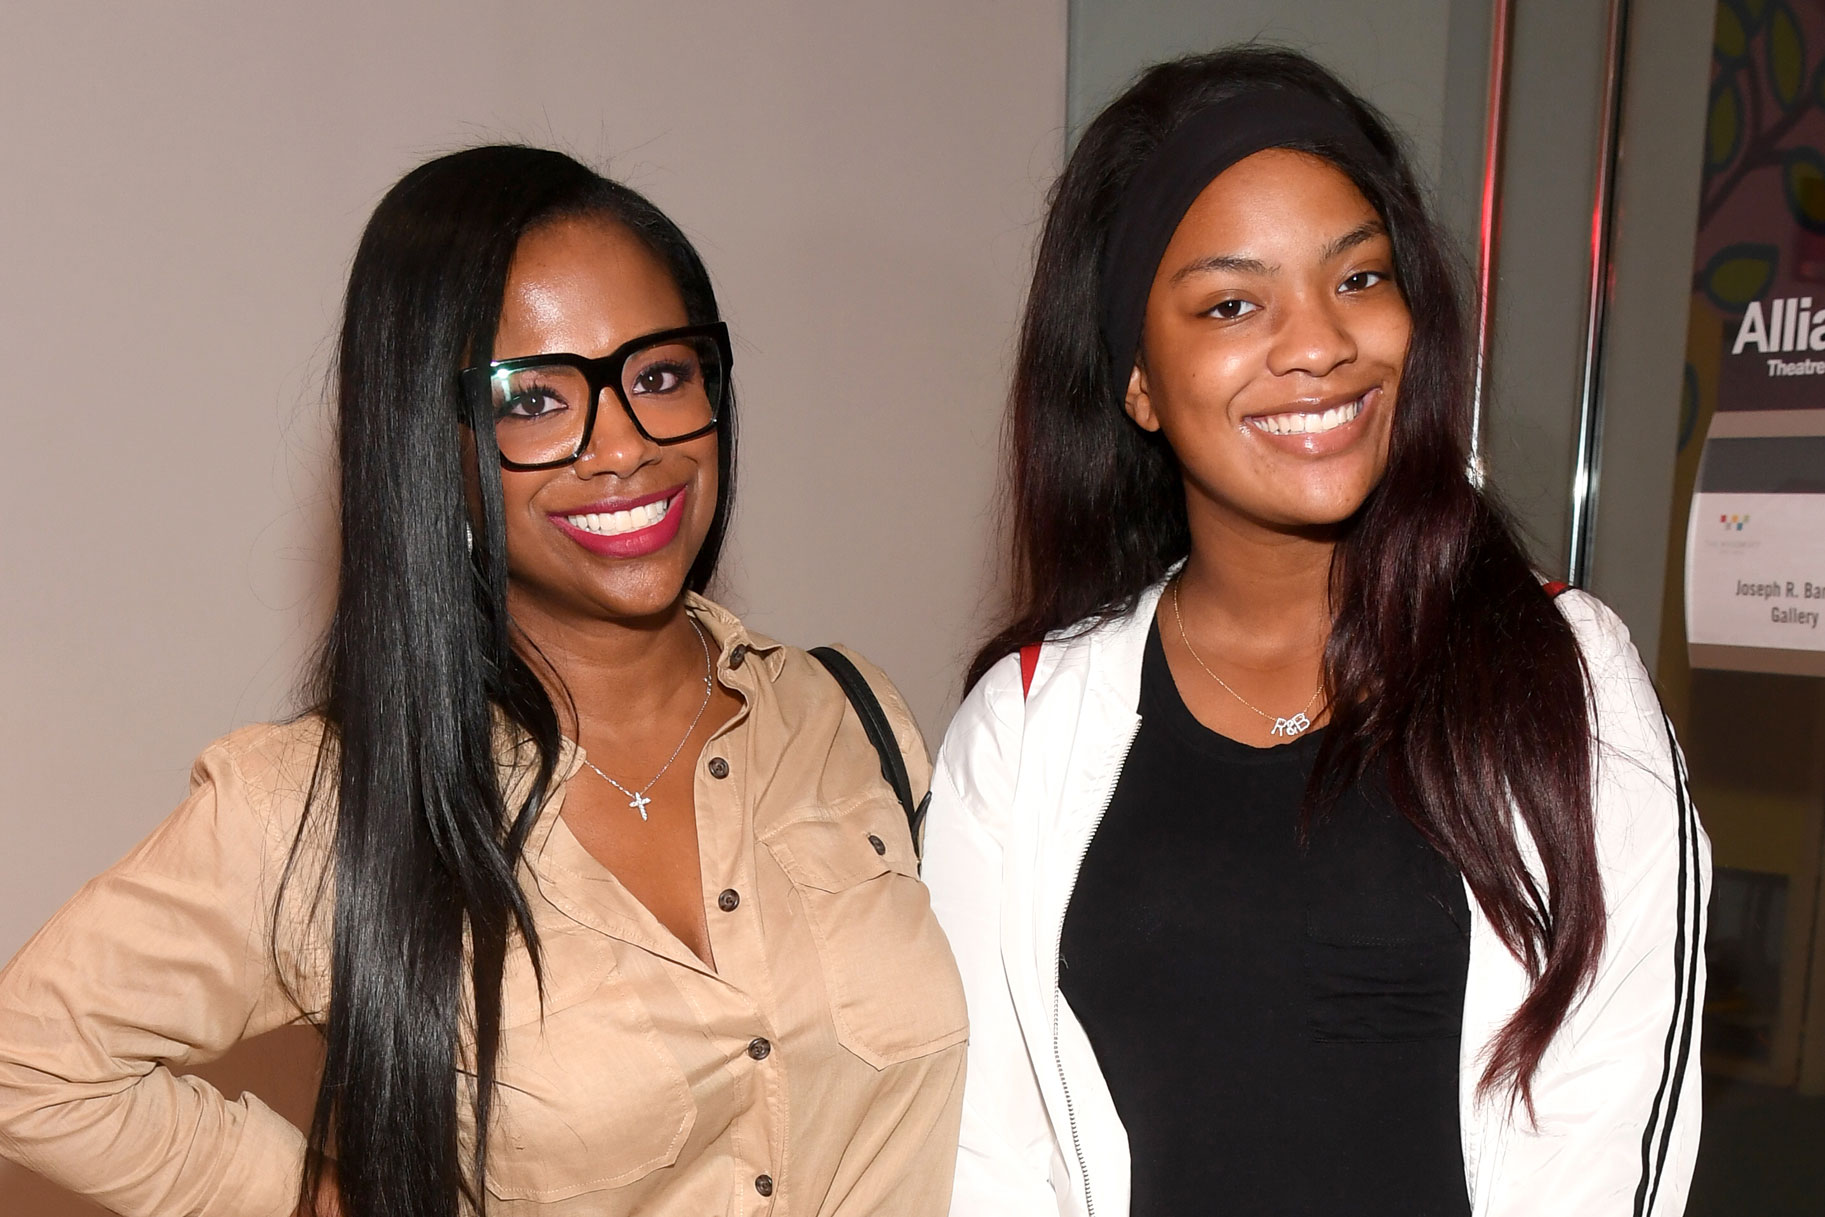 kandi-burruss-shares-a-gorgeous-photo-of-blaze-tucker-and-sister-riley-burruss-post-op-but-blocks-haters-from-criticizing-her-daughters-cosmetic-surgery